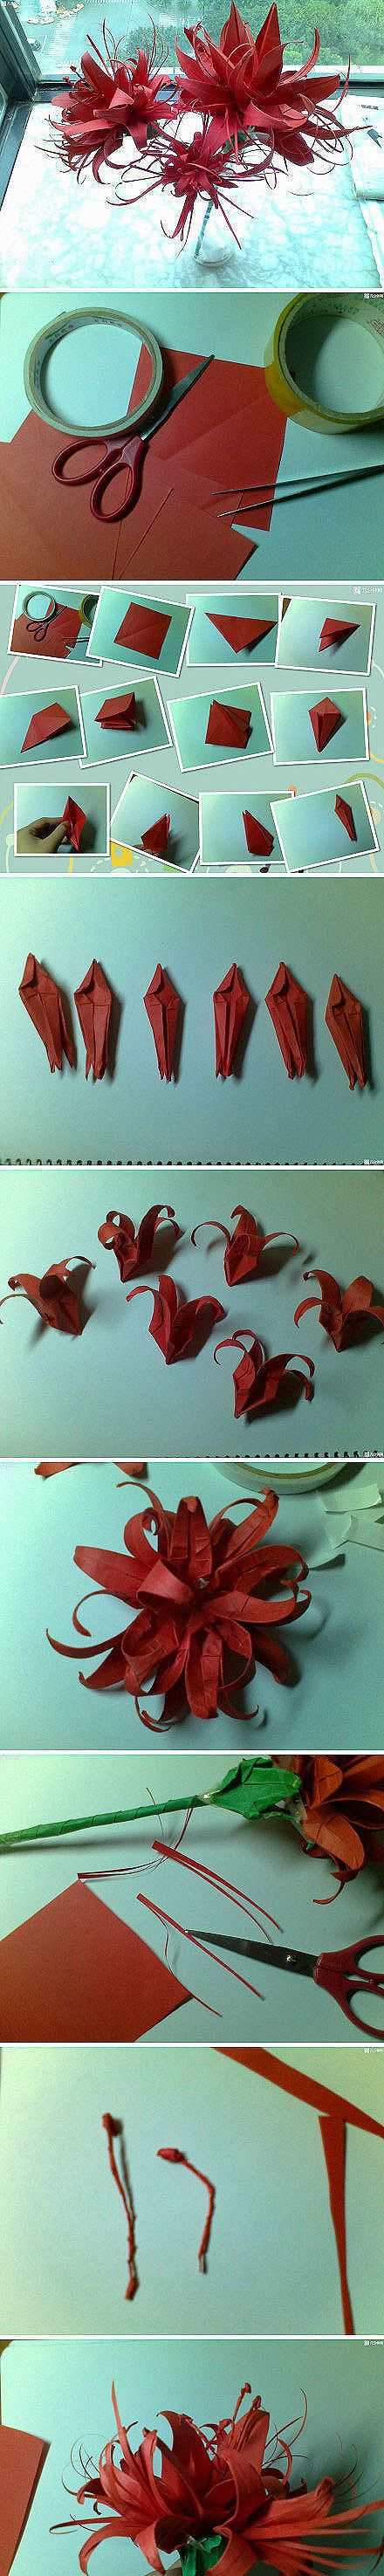 Origami DIY handmade paper art origami tutorial Bana, beautiful, right, moving hands to ~